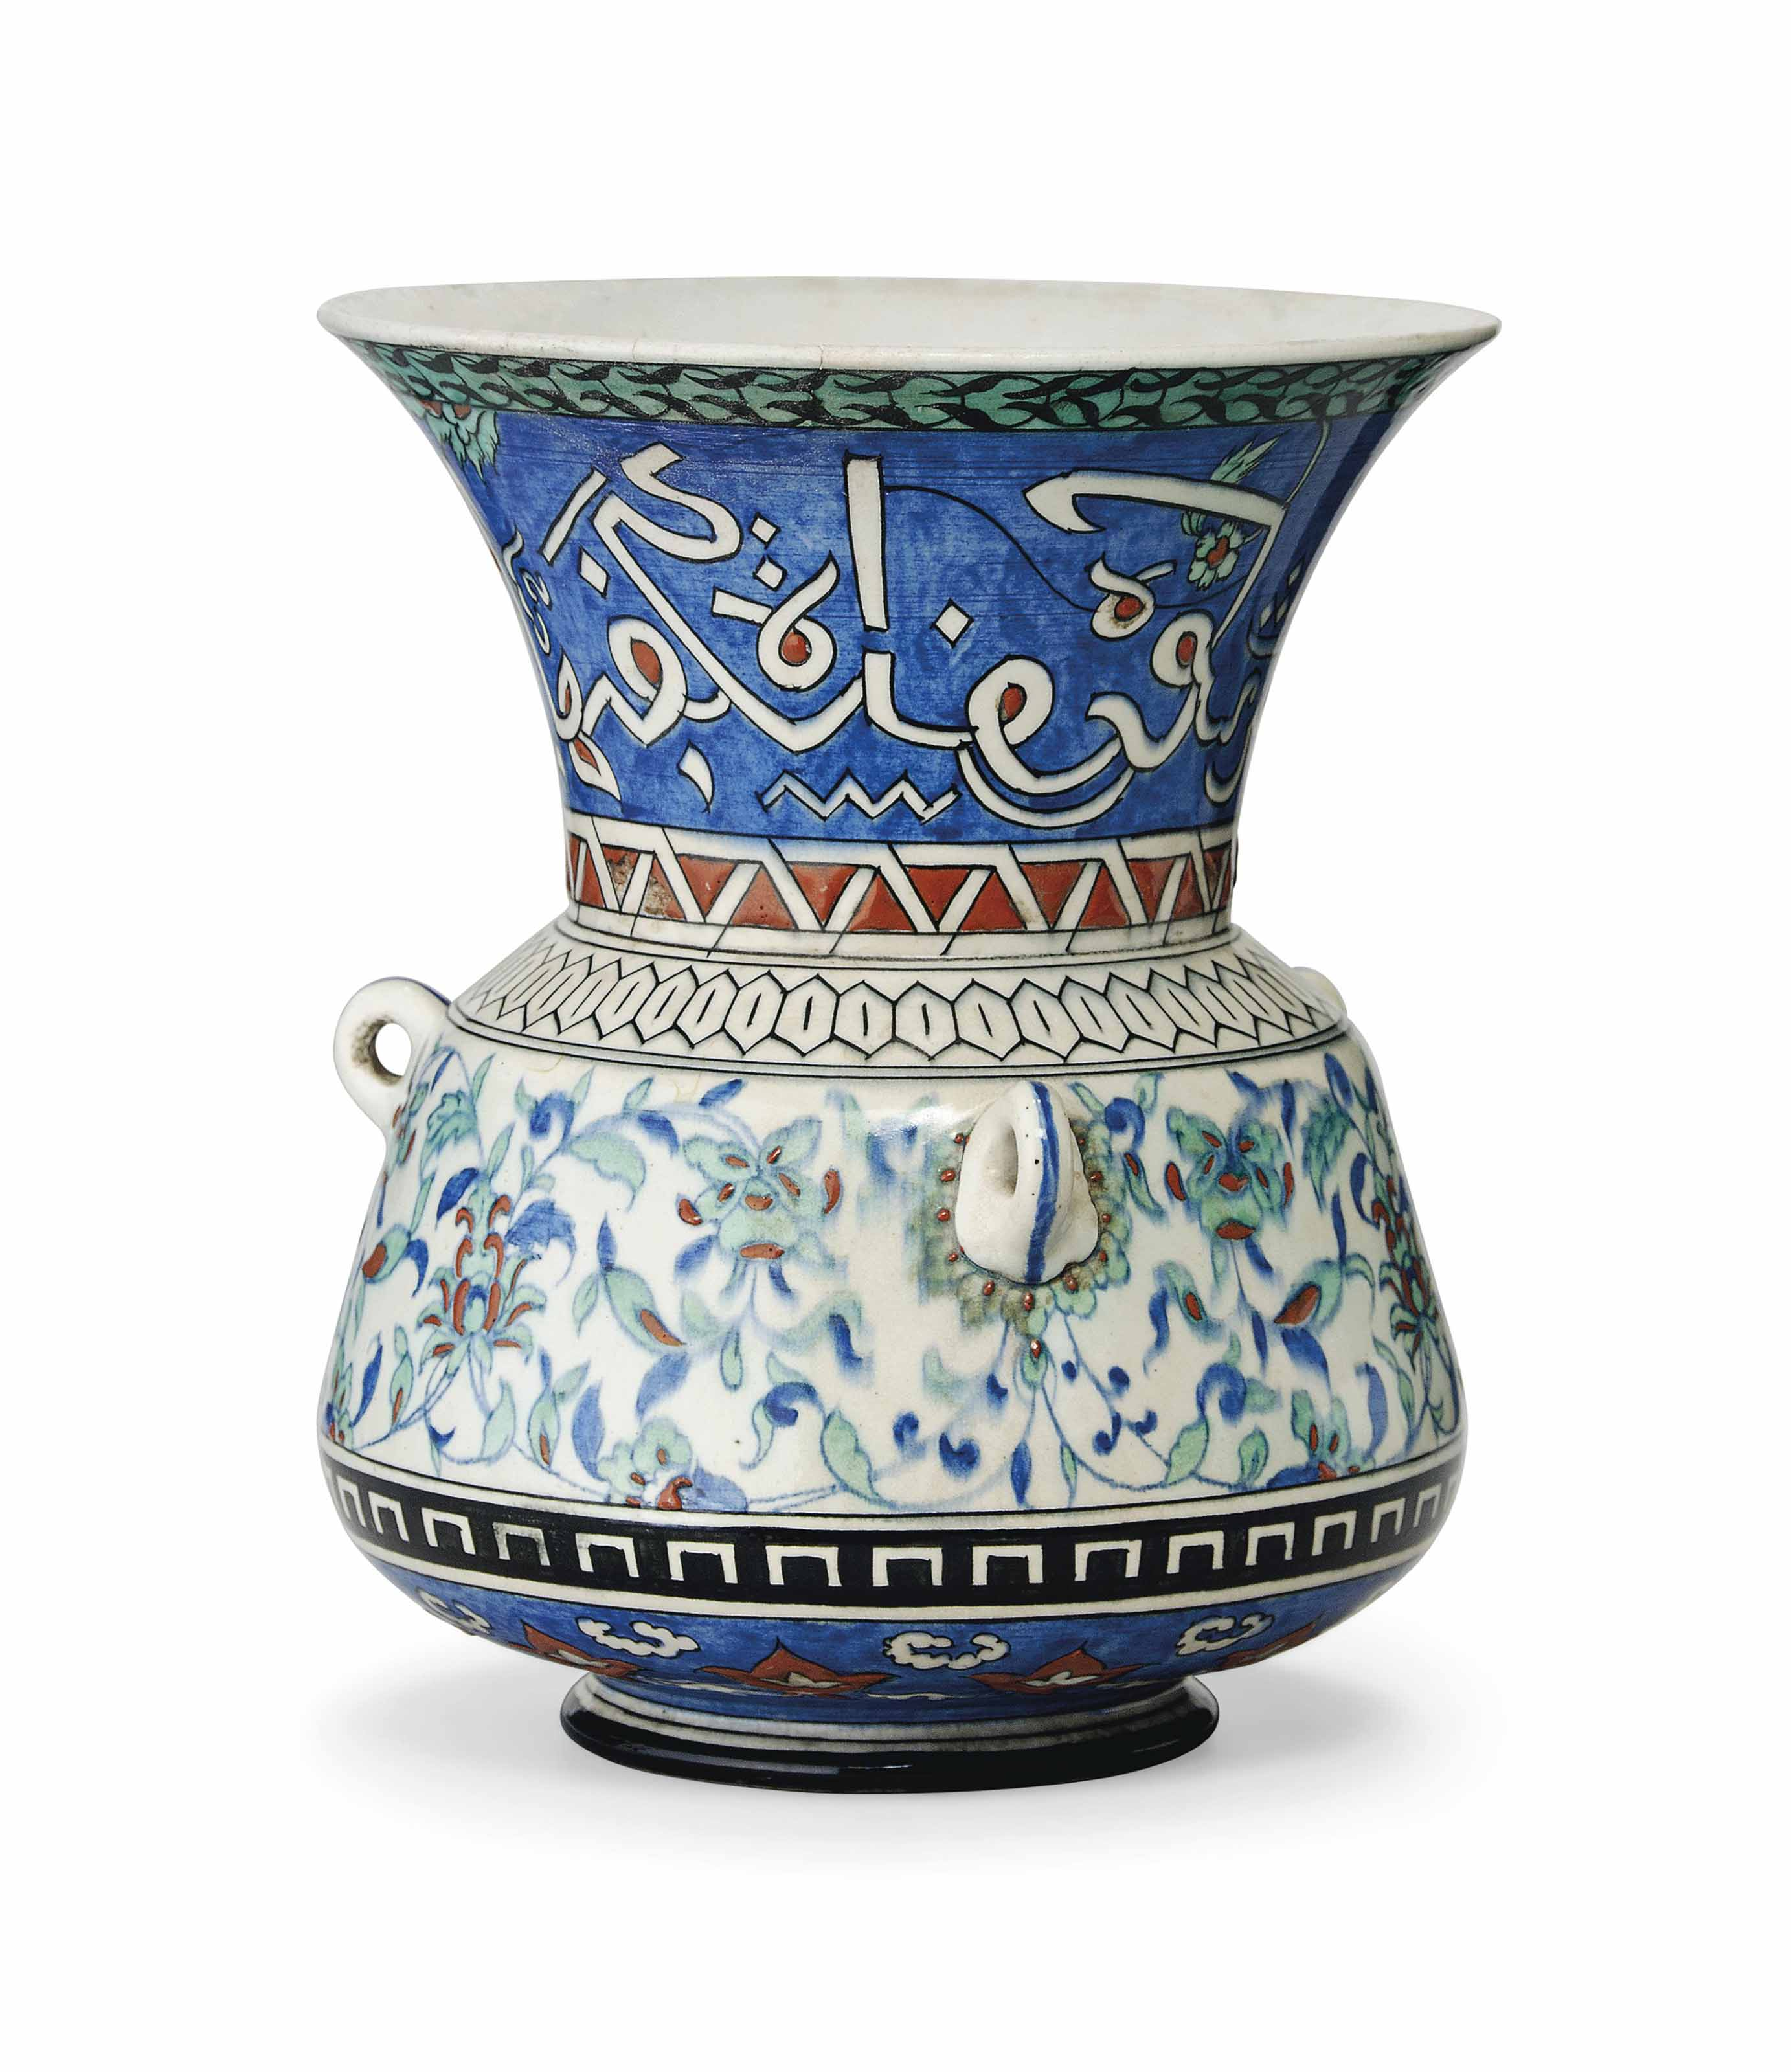 A SAMSON POTTERY MOSQUE LAMP IN THE IZNIK STYLE